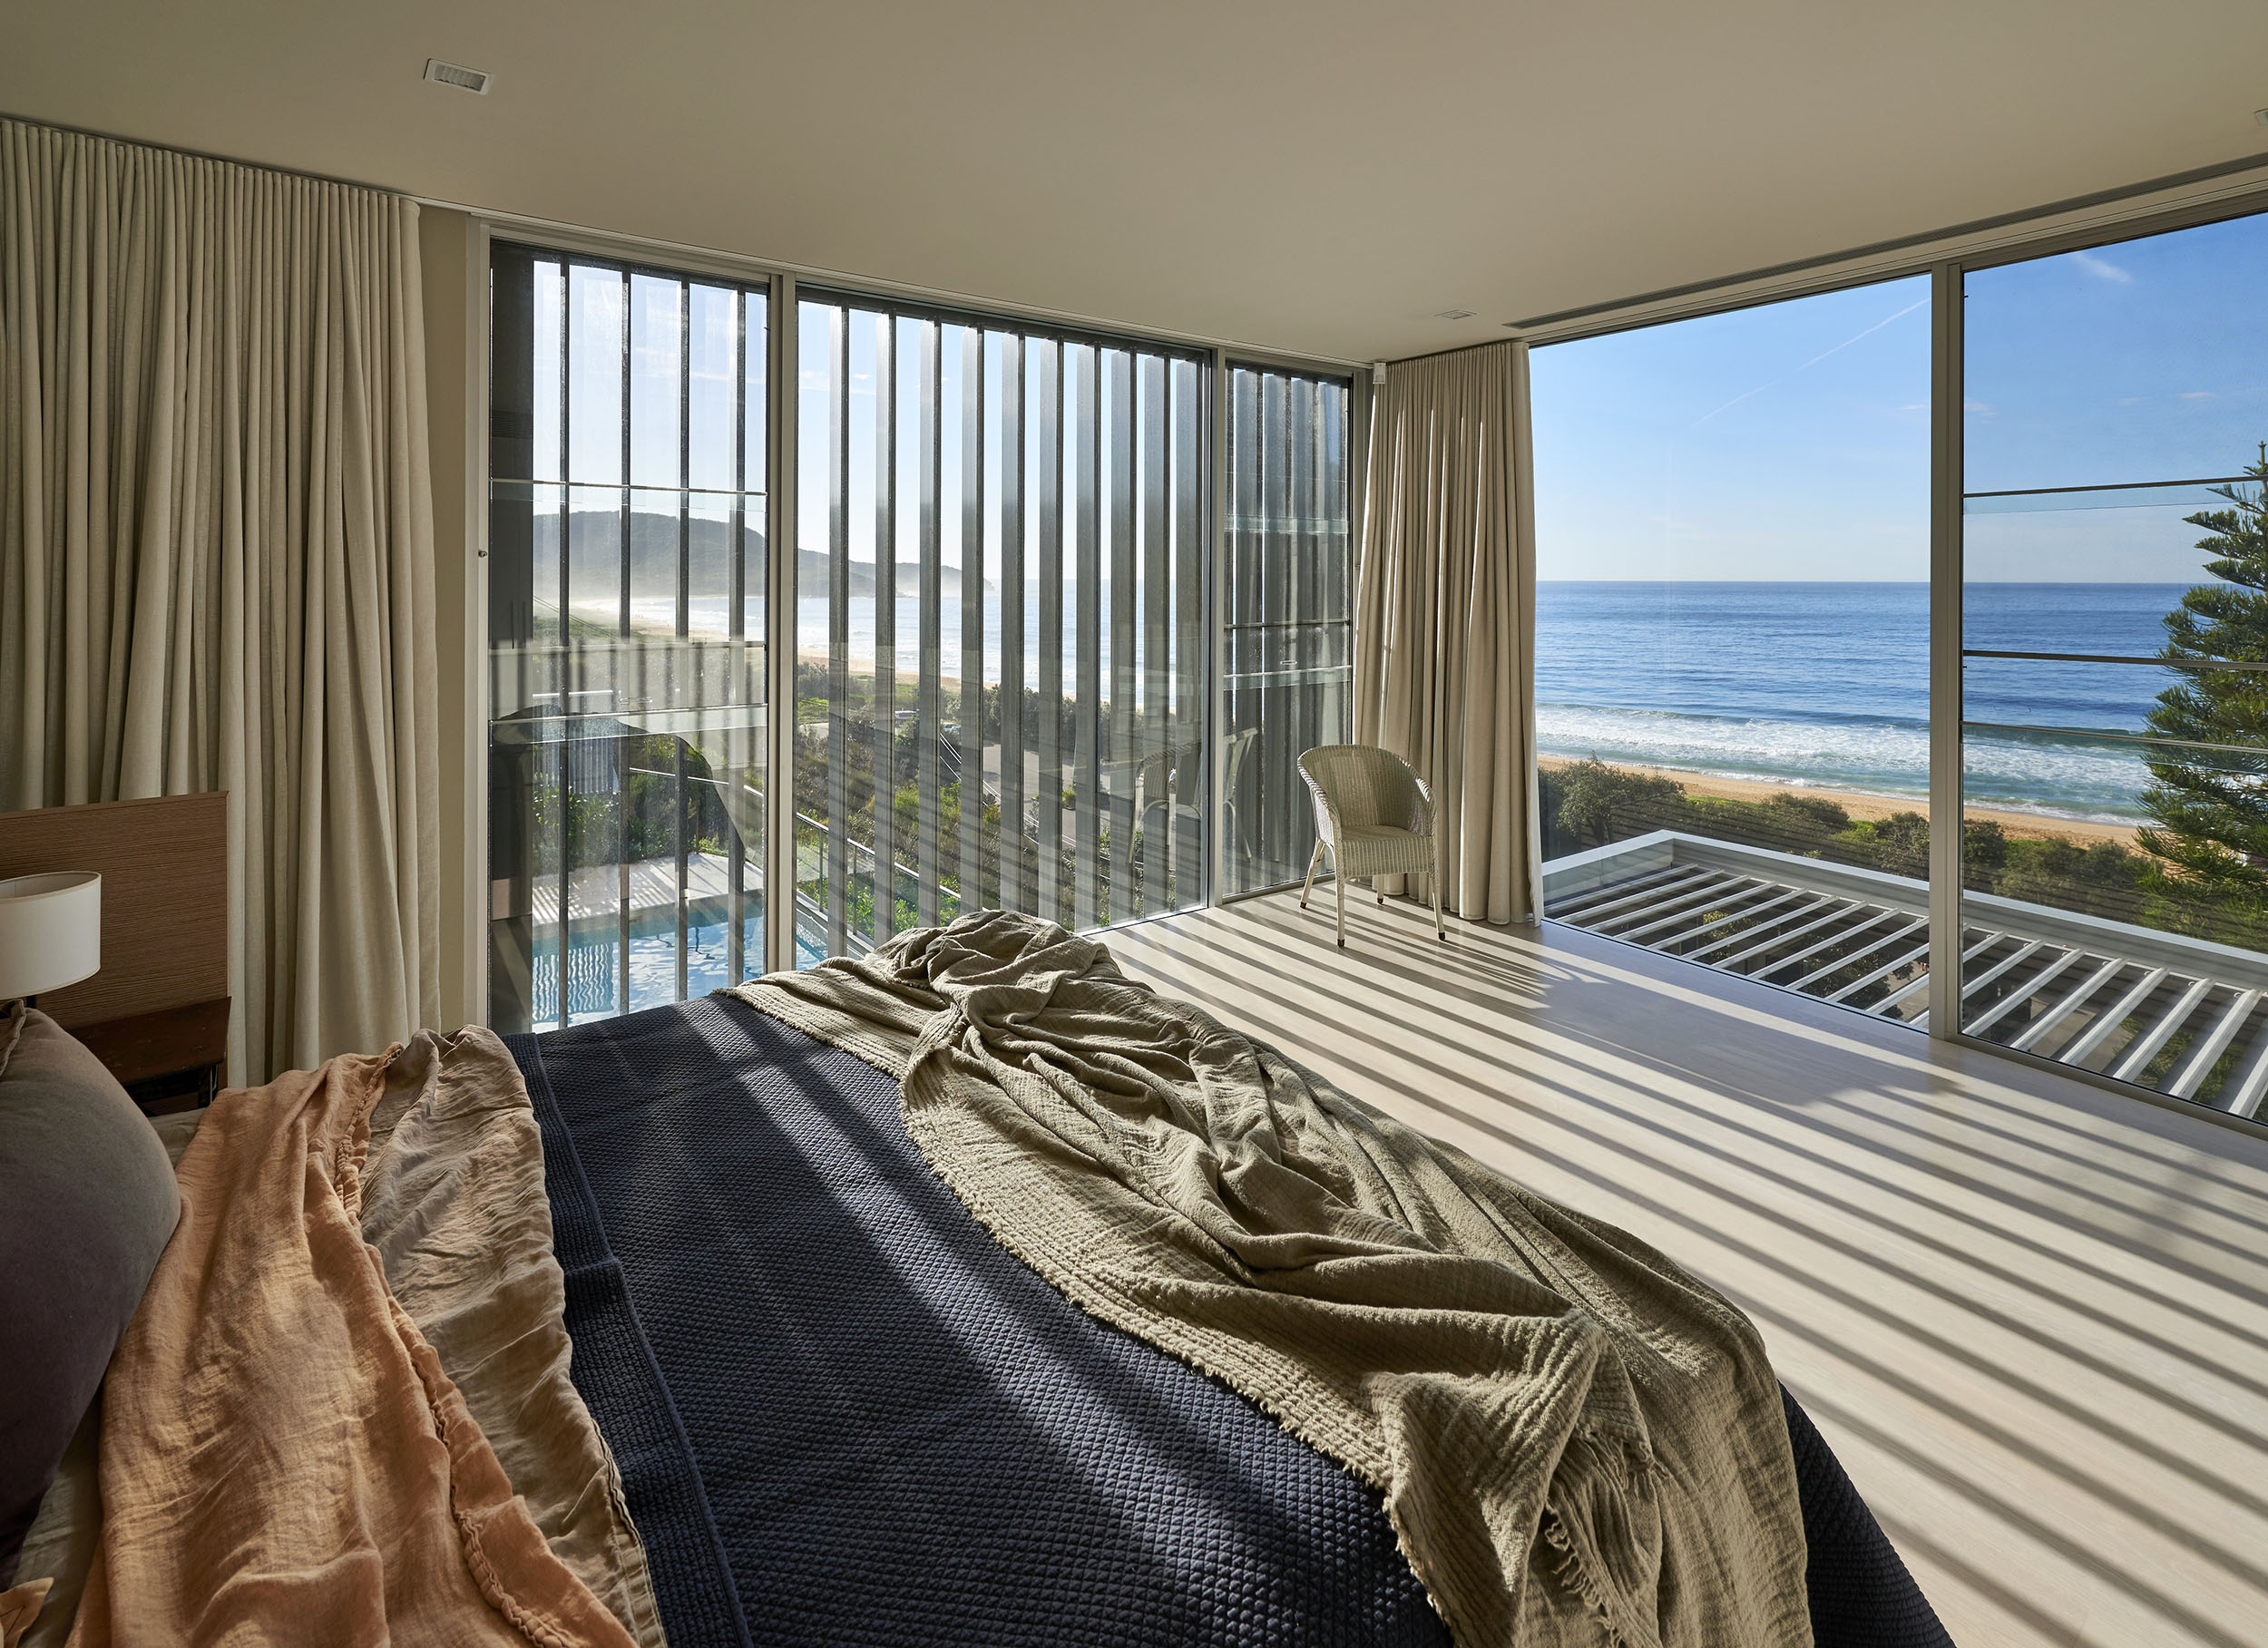 A view of the bed and out to the sea from the master suite's glass doors and walls at Killcare Beach House